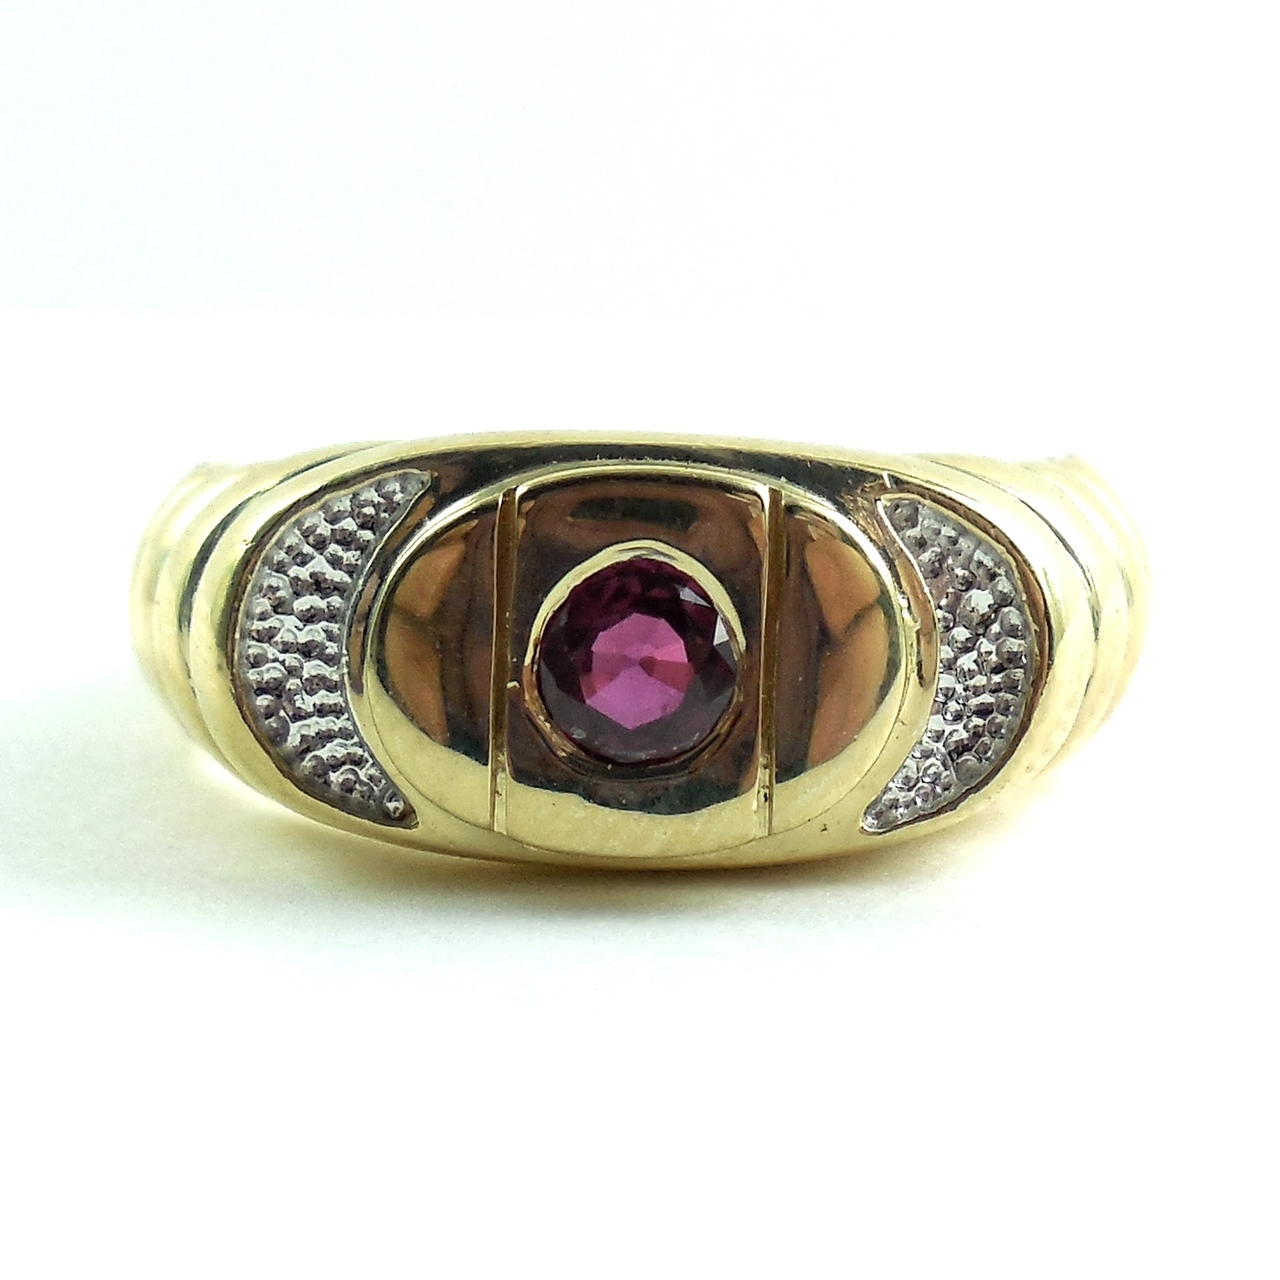 Contemporary 14k Gold And Ruby Mens Ring Size 9.5